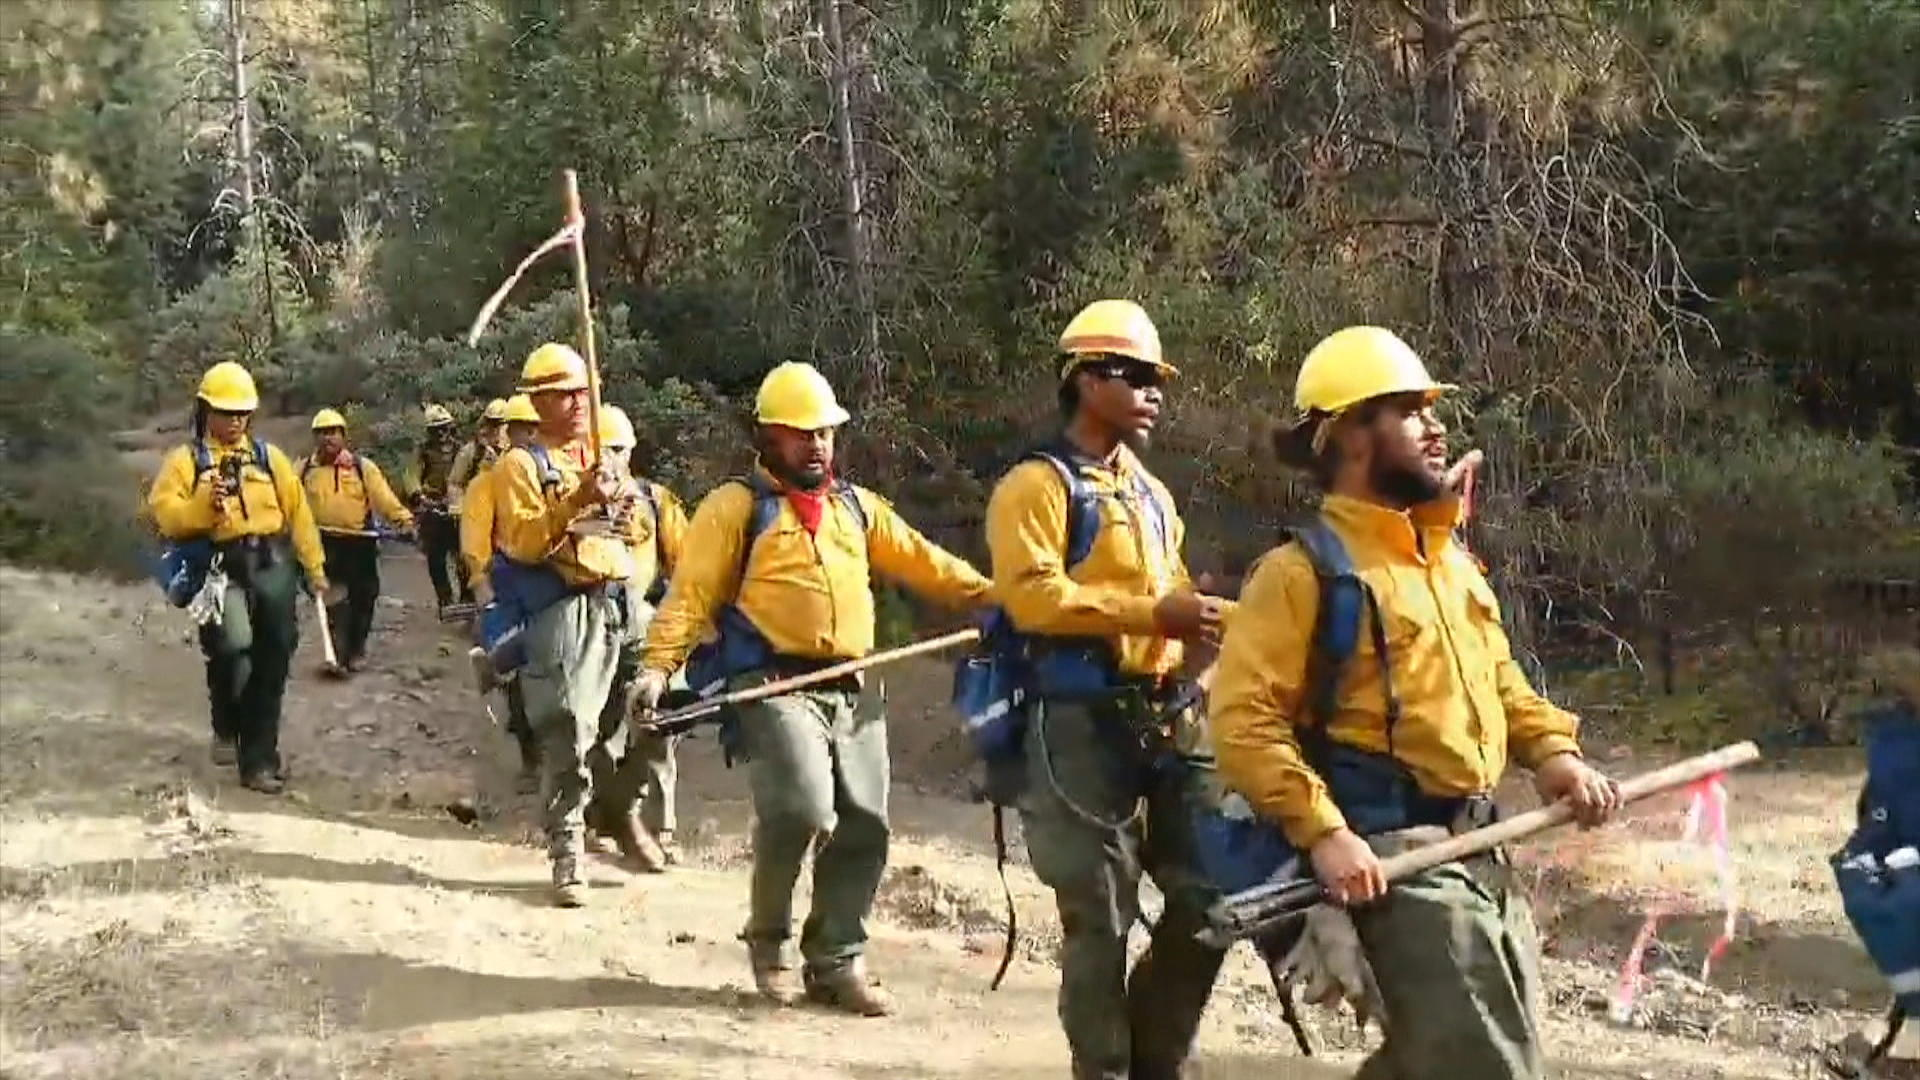 Singing Samoan firefighters lift spirits in fight against